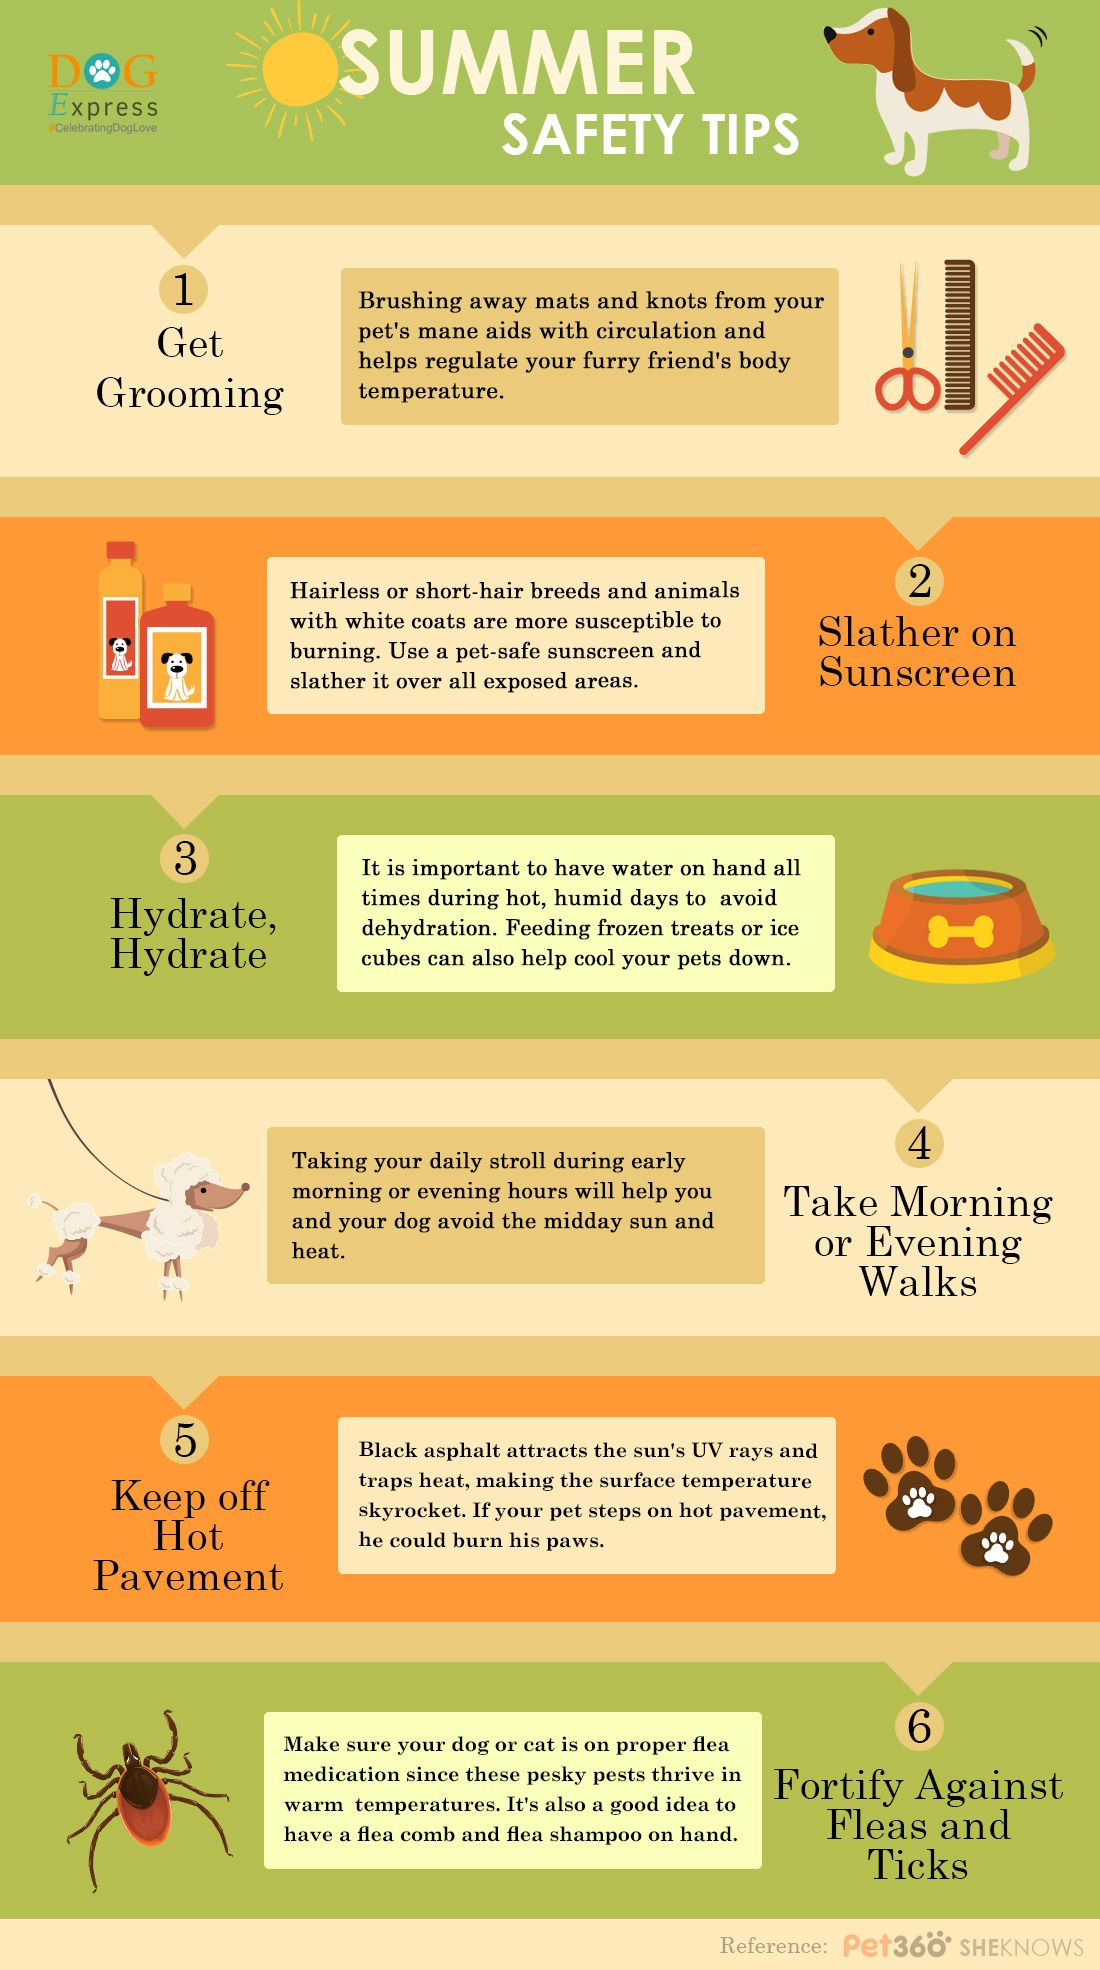 Summer Safety Tips For Dogs [Infographic] Summer safety